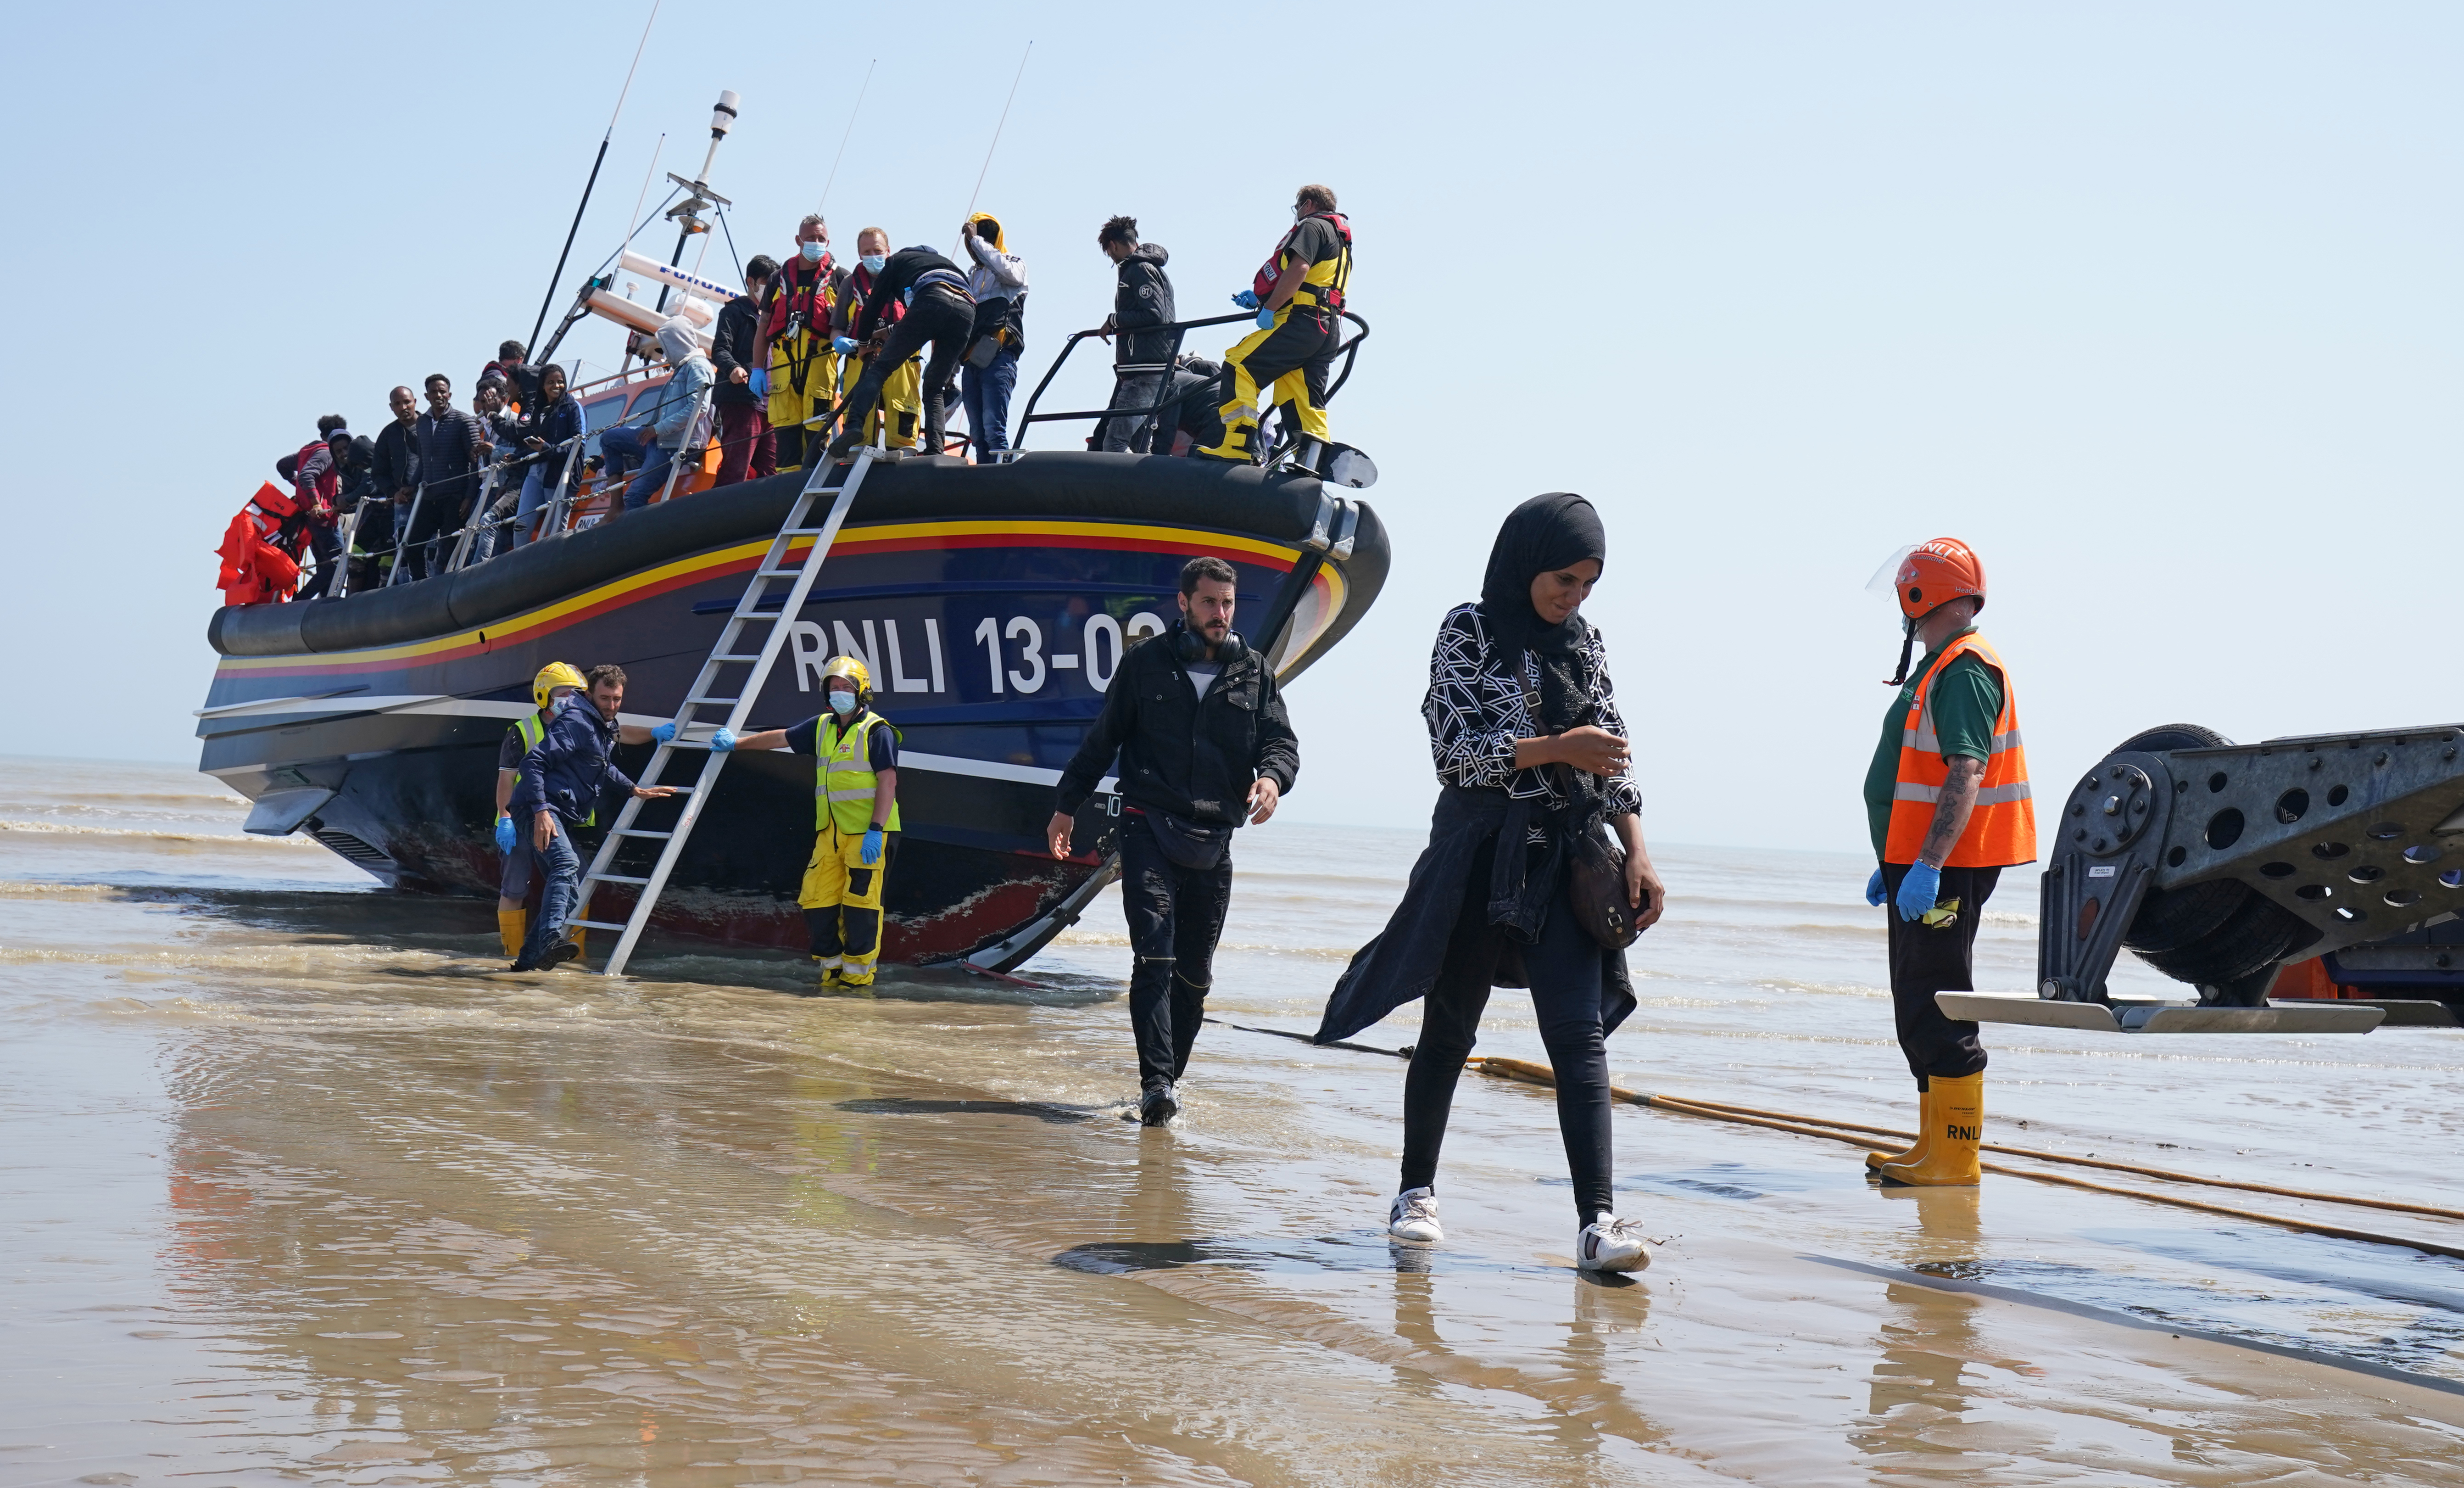 <p>A group of people thought to be migrants crossing from France come ashore from the local lifeboat at Dungeness in Kent, after being picked-up following a small boat incident in the Channel. Picture date: Tuesday July 20, 2021.</p>